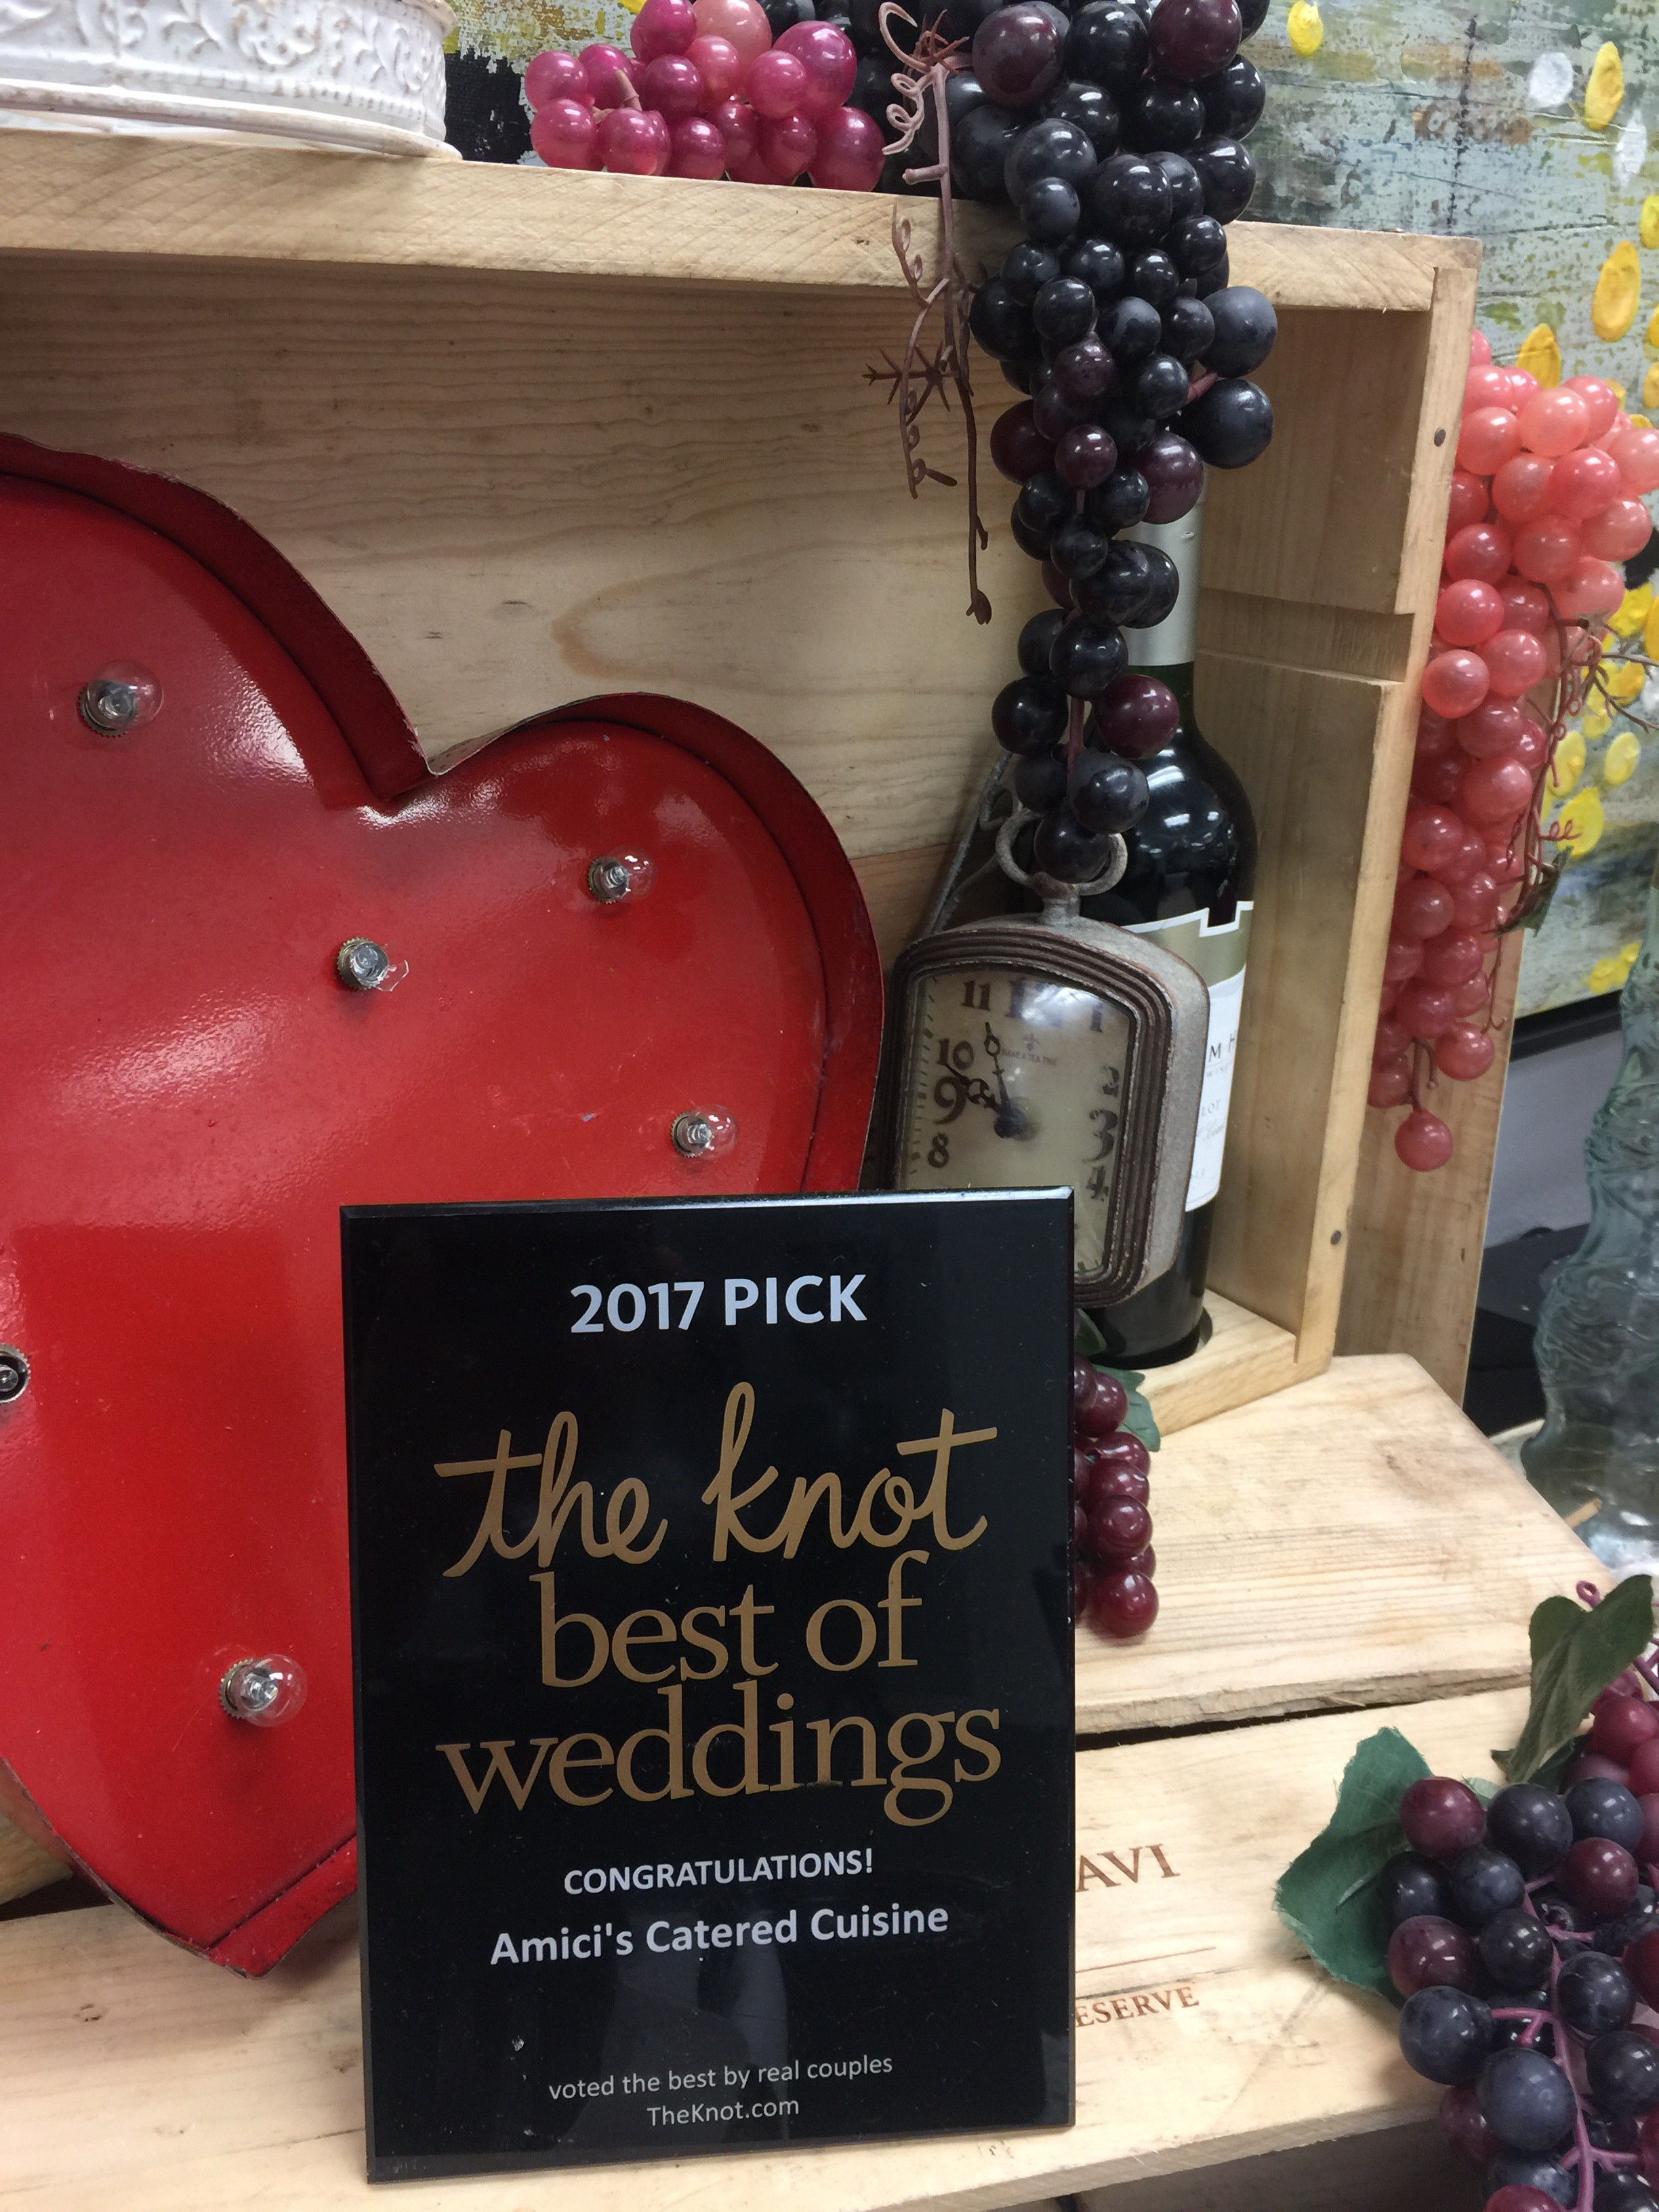 The Knot - Best of Weddings Award 2017